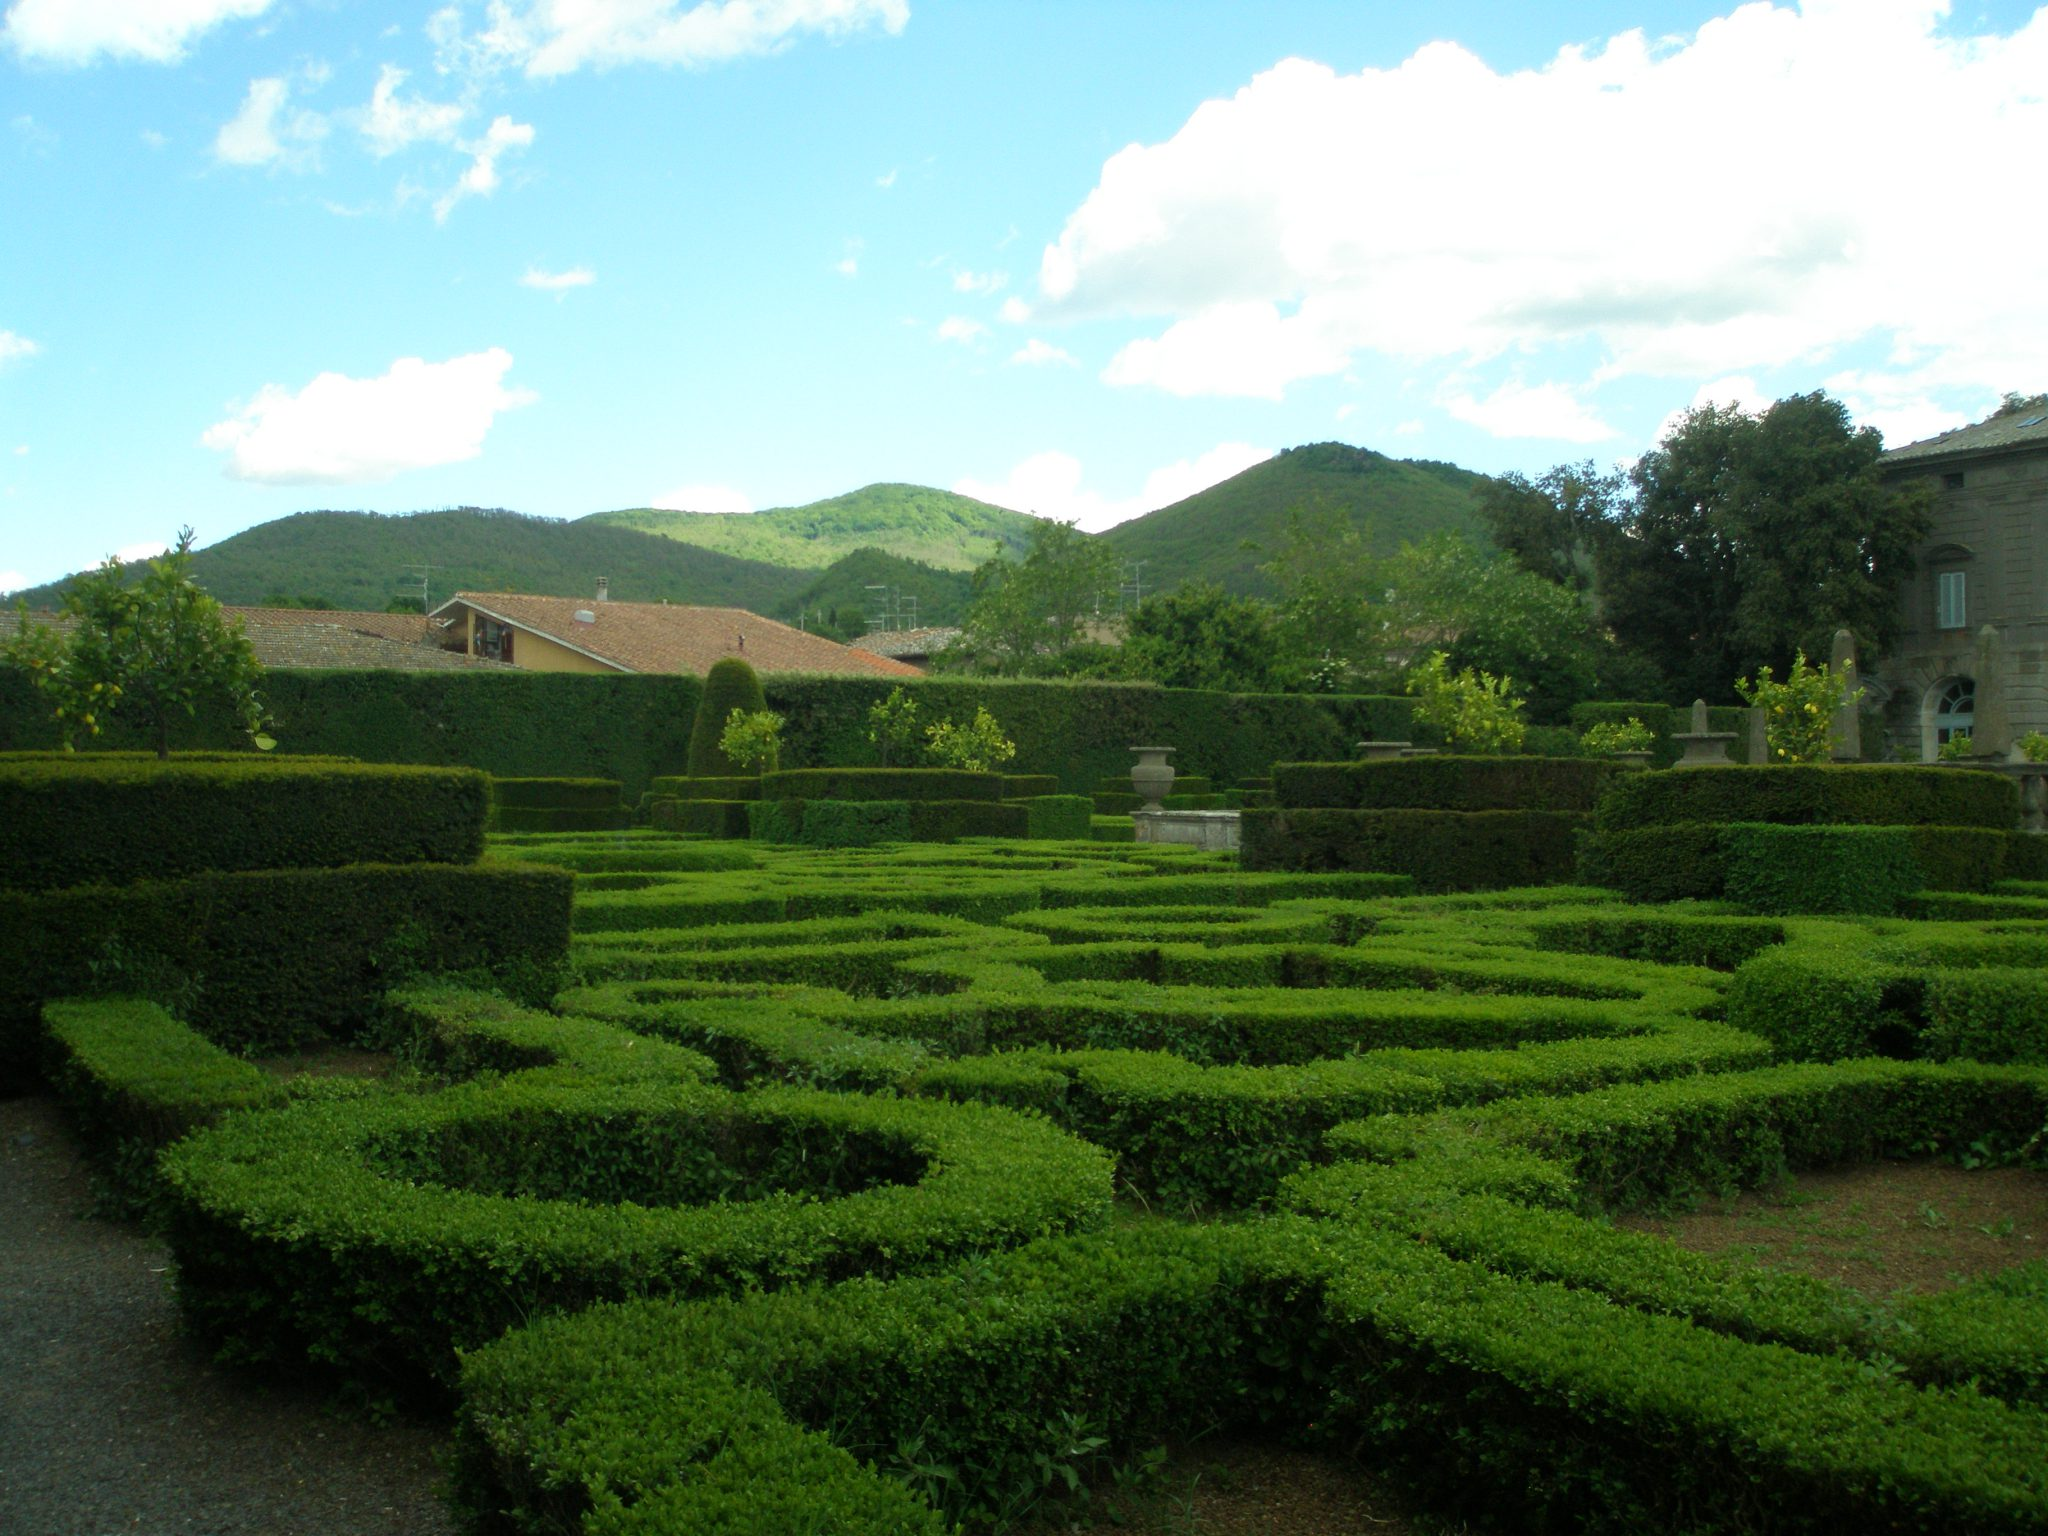 The Parterre in the Fountain of the Moors garden, with distant hills...